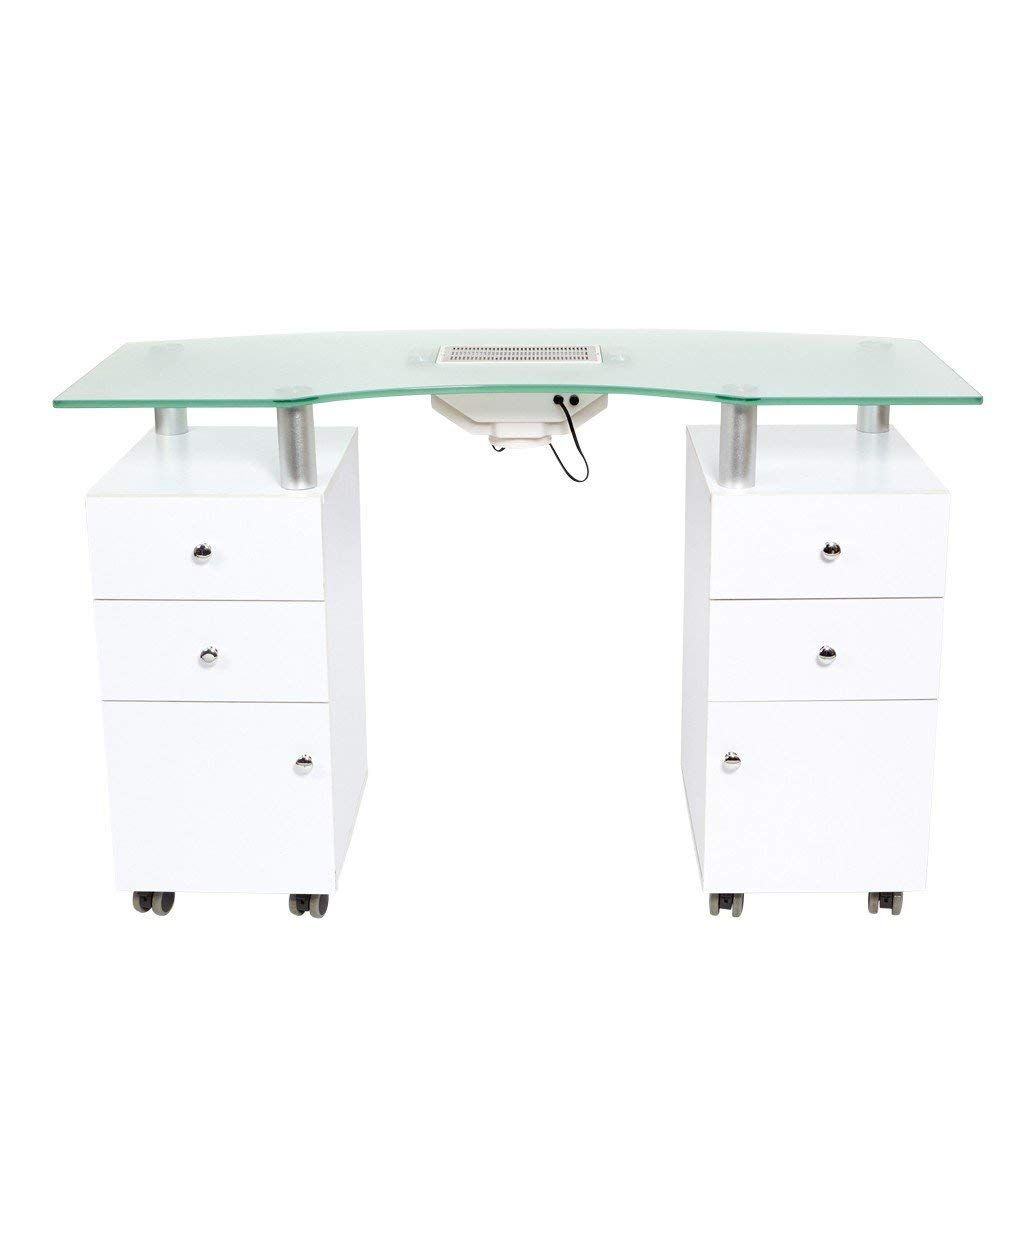 J A Glass Top Manicure Table W Draft Vent Manicure Table Salon Interior Design Nail Salon Interior Design